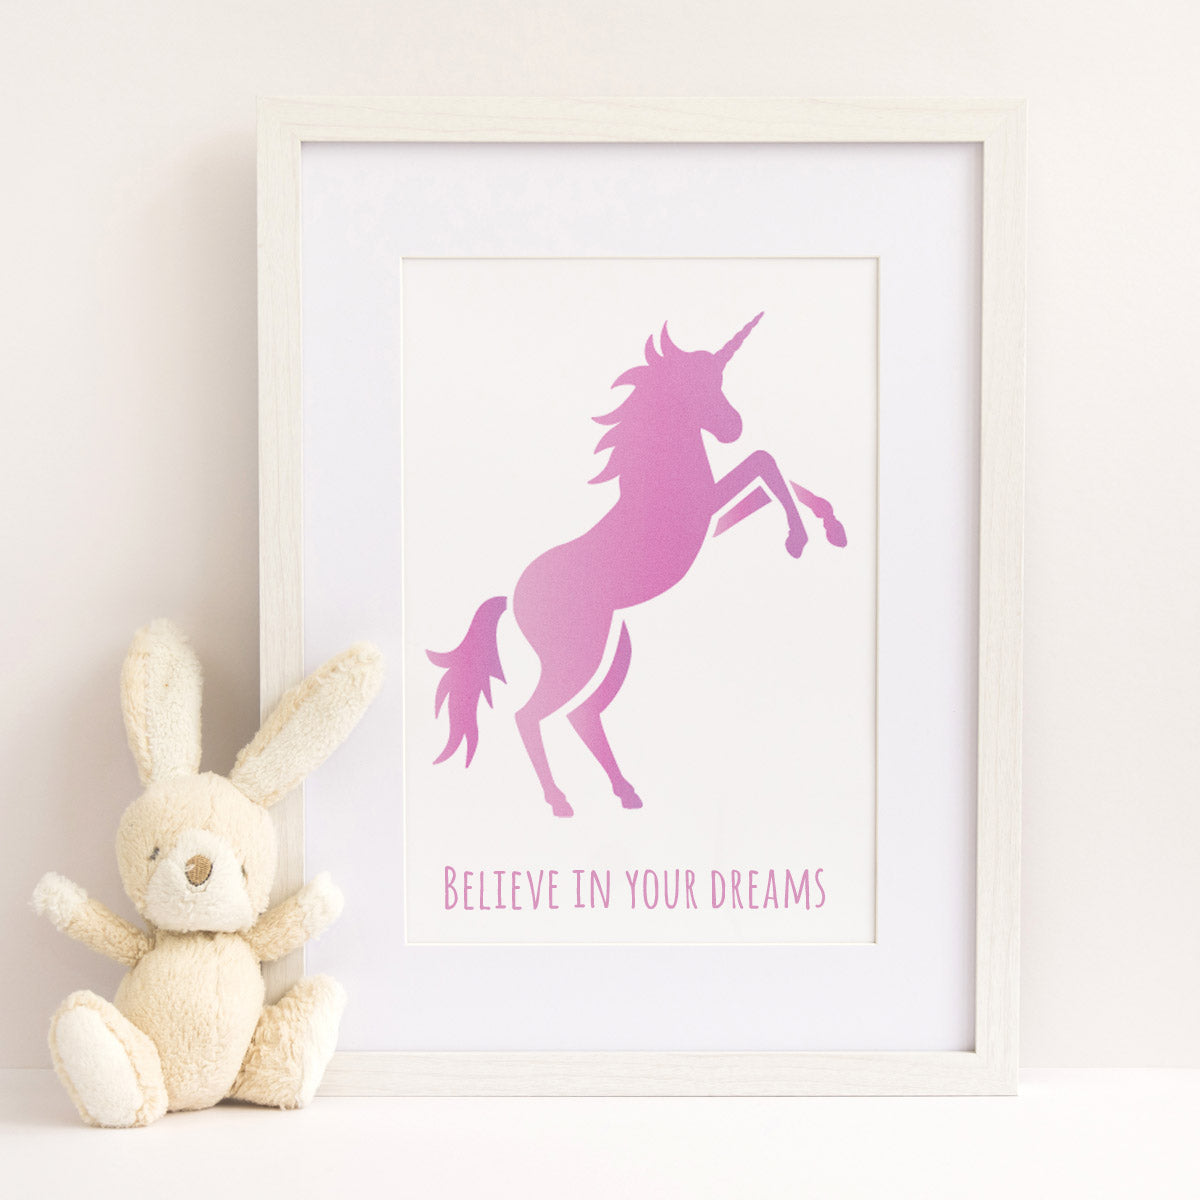 CraftStar Prancing Unicorn Stencil as Framed Print